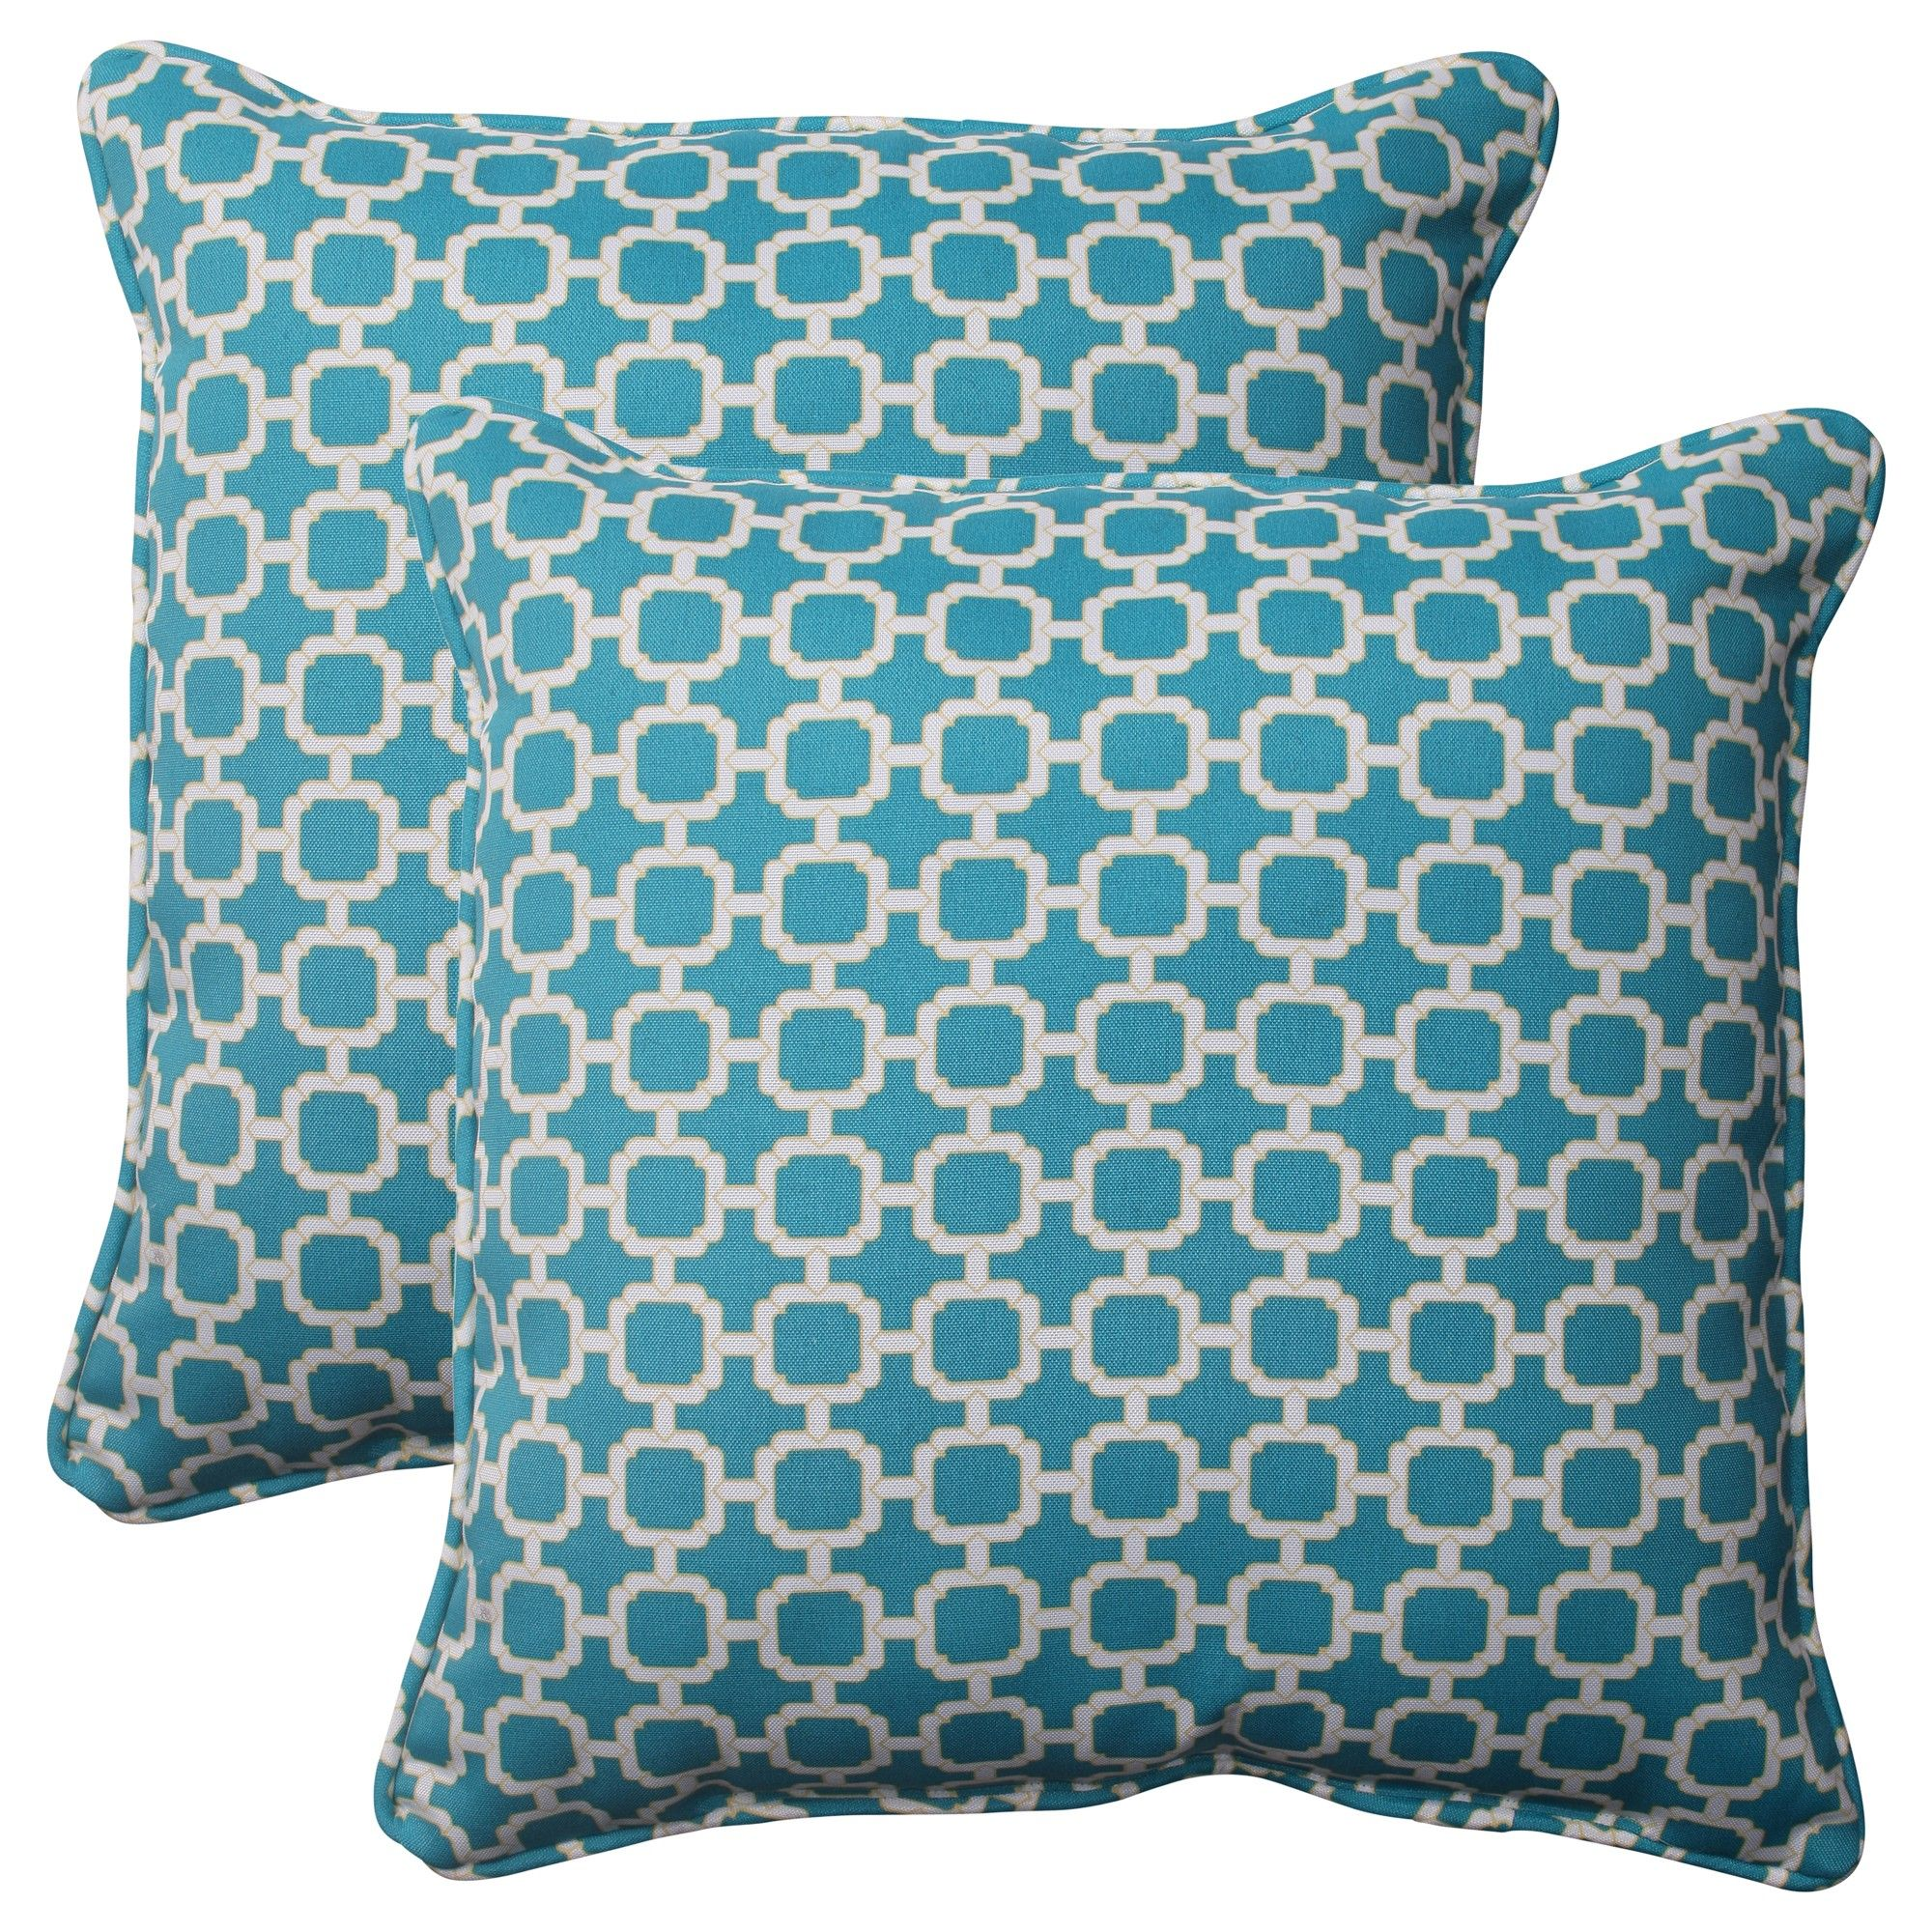 Brown and teal throw pillows - 17 Best Images About Purple And Teal On Pinterest Tribal Elephant Vintage Teacups And Teal Pillows